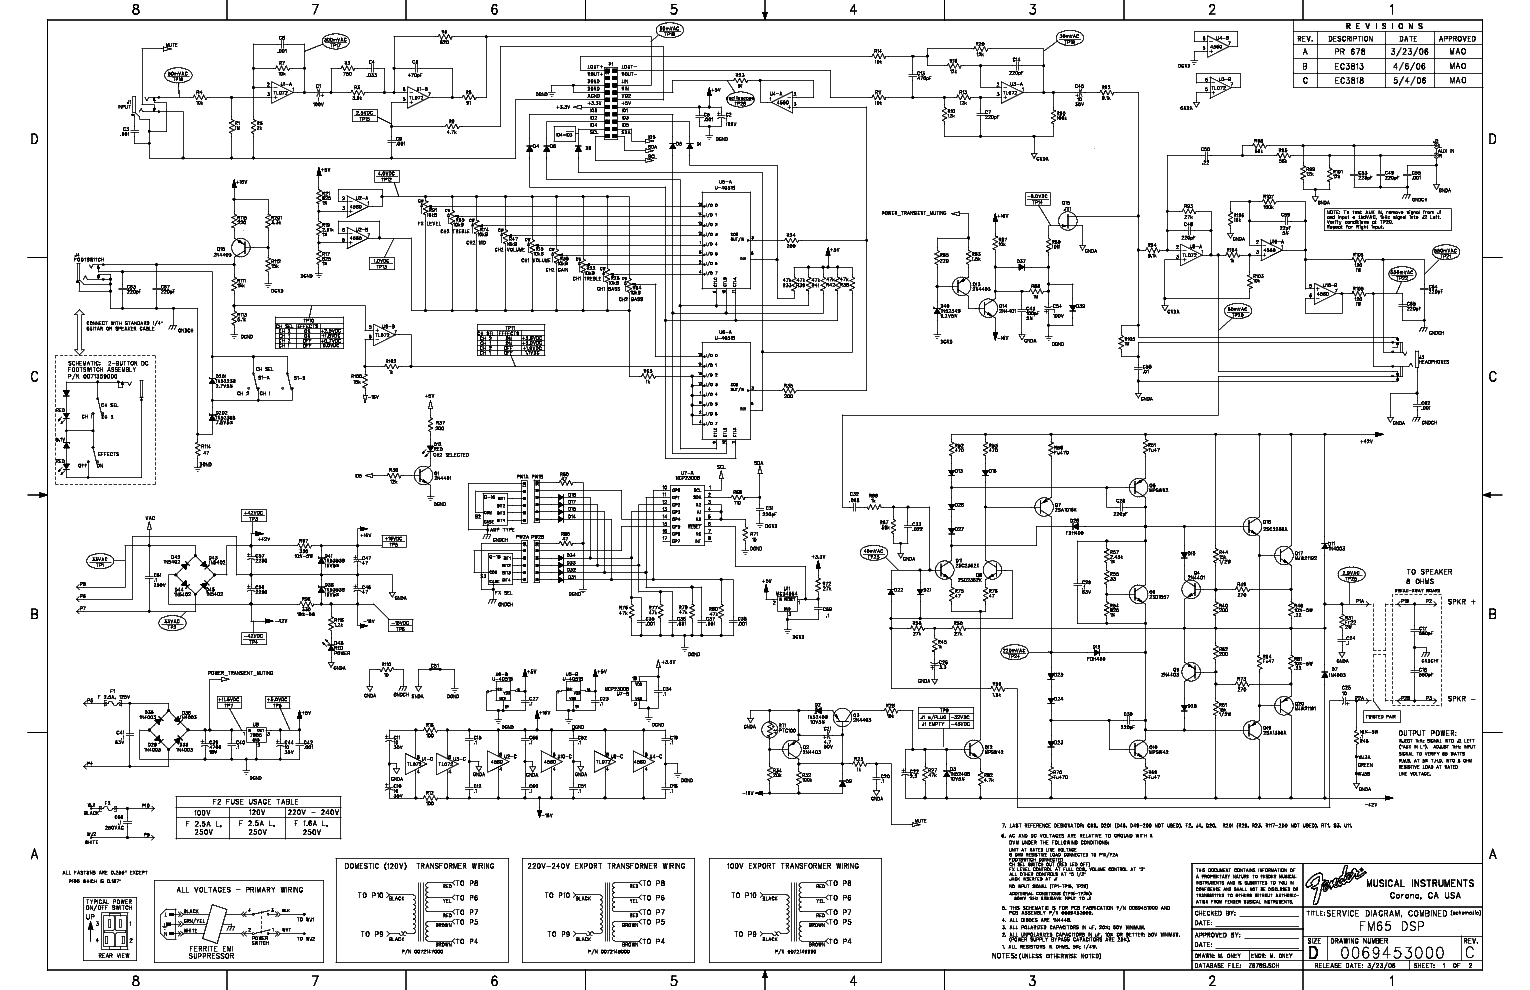 FENDER FM65DSP SCH Service Manual download, schematics